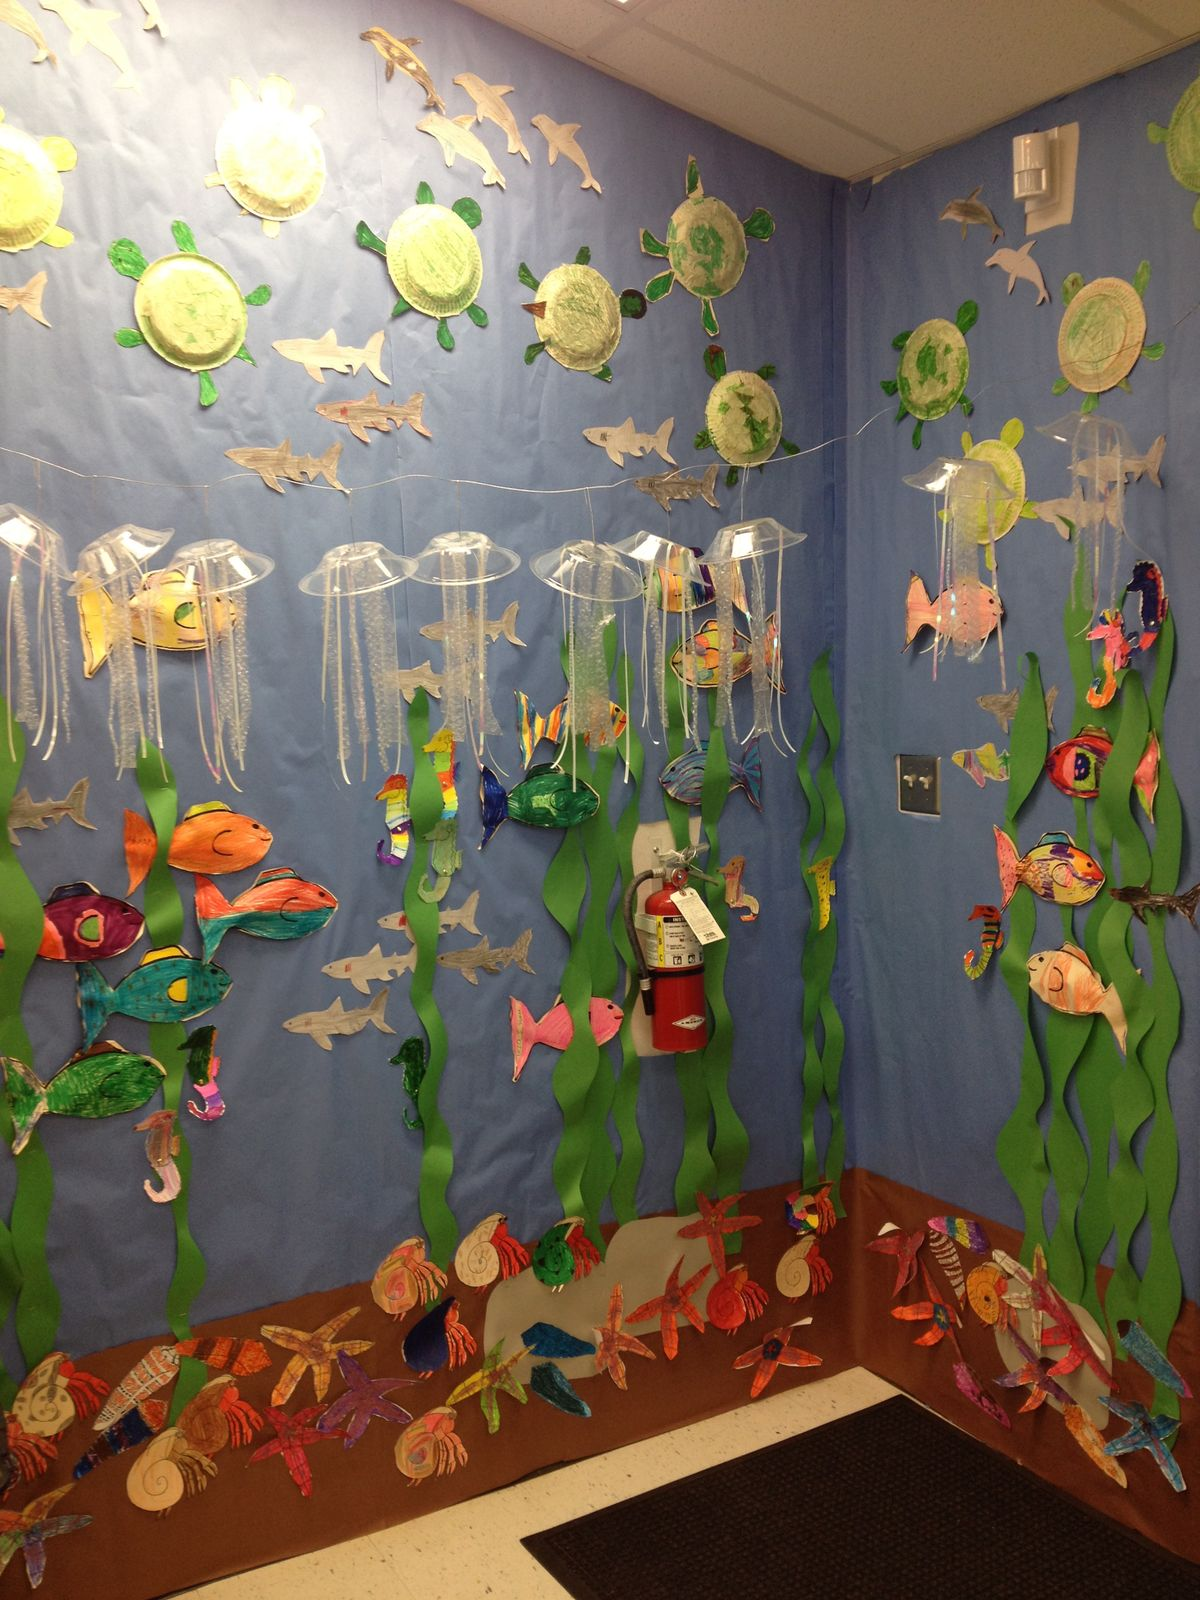 Completed ocean aquarium with ocean animals we are so do for Mural de la casa del migrante analyse